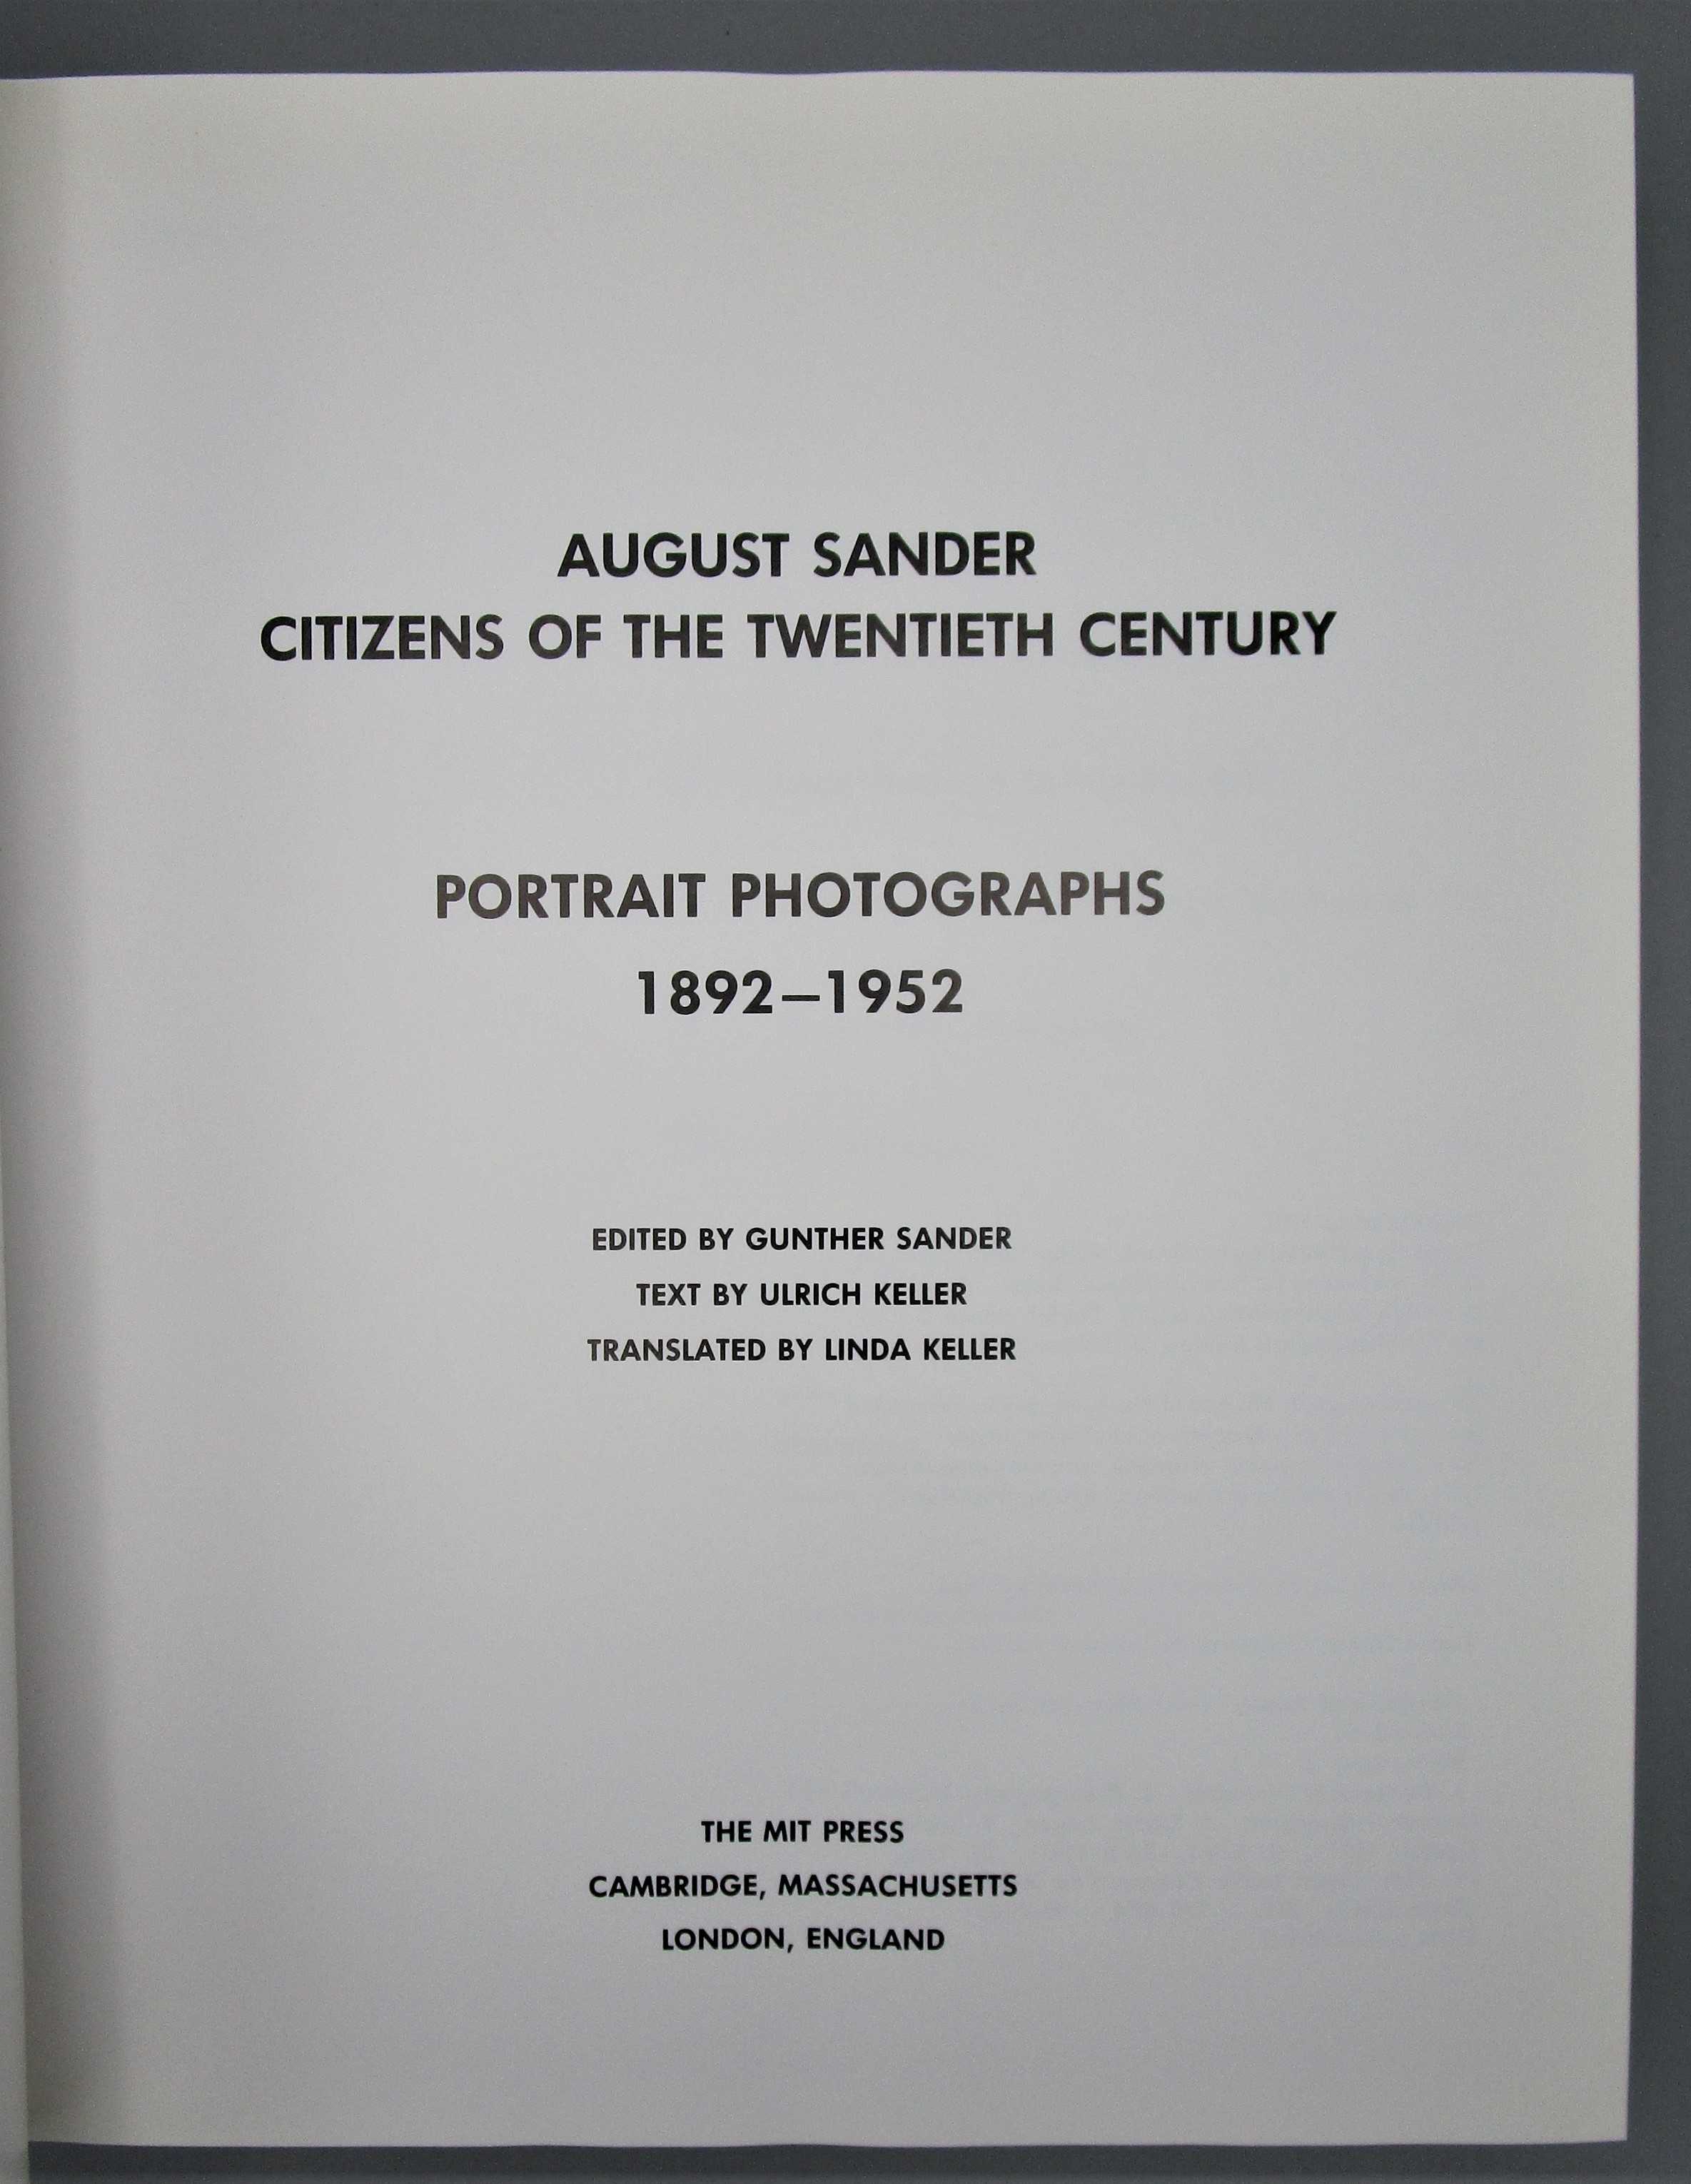 AUGUST SANDER: CITIZENS OF THE 20th CENTURY - Portrait Photos, by Gunther Sander - 1997